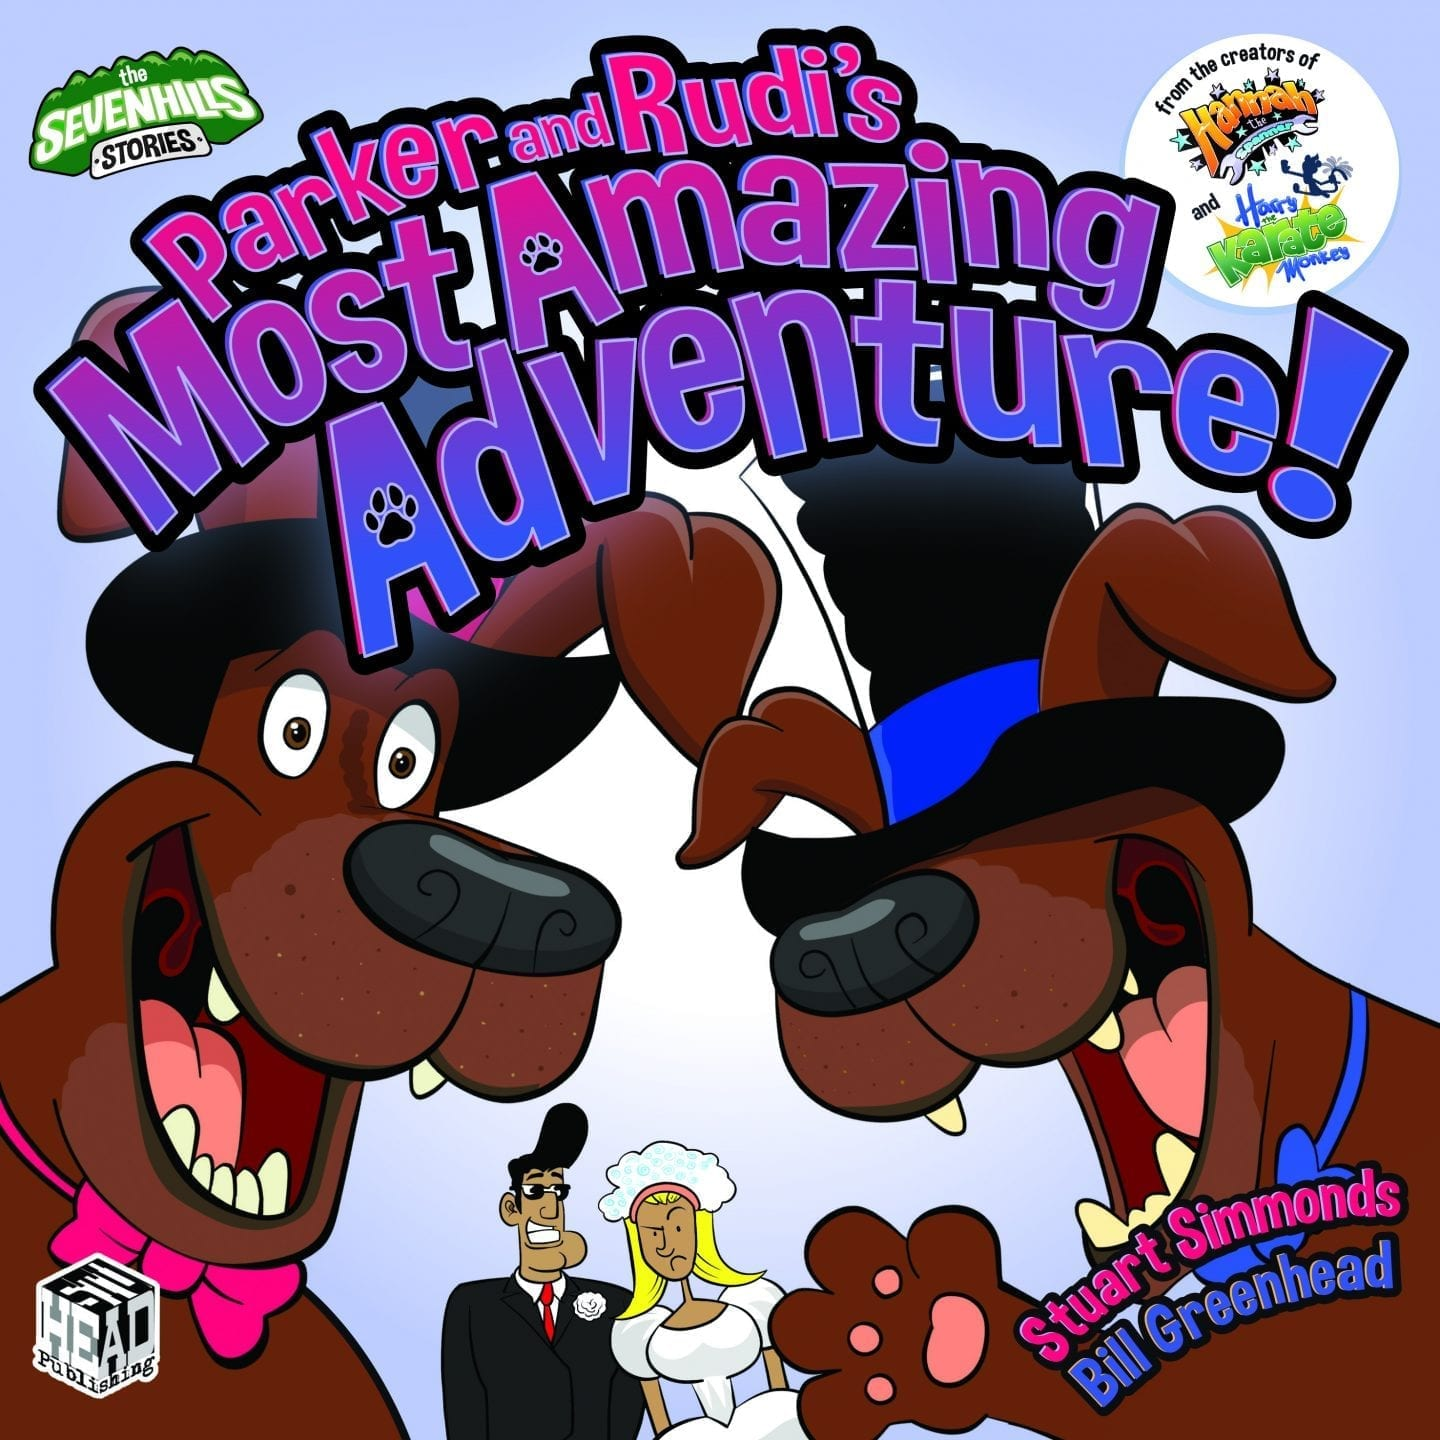 parker and rudis most amazing adventure official book cover